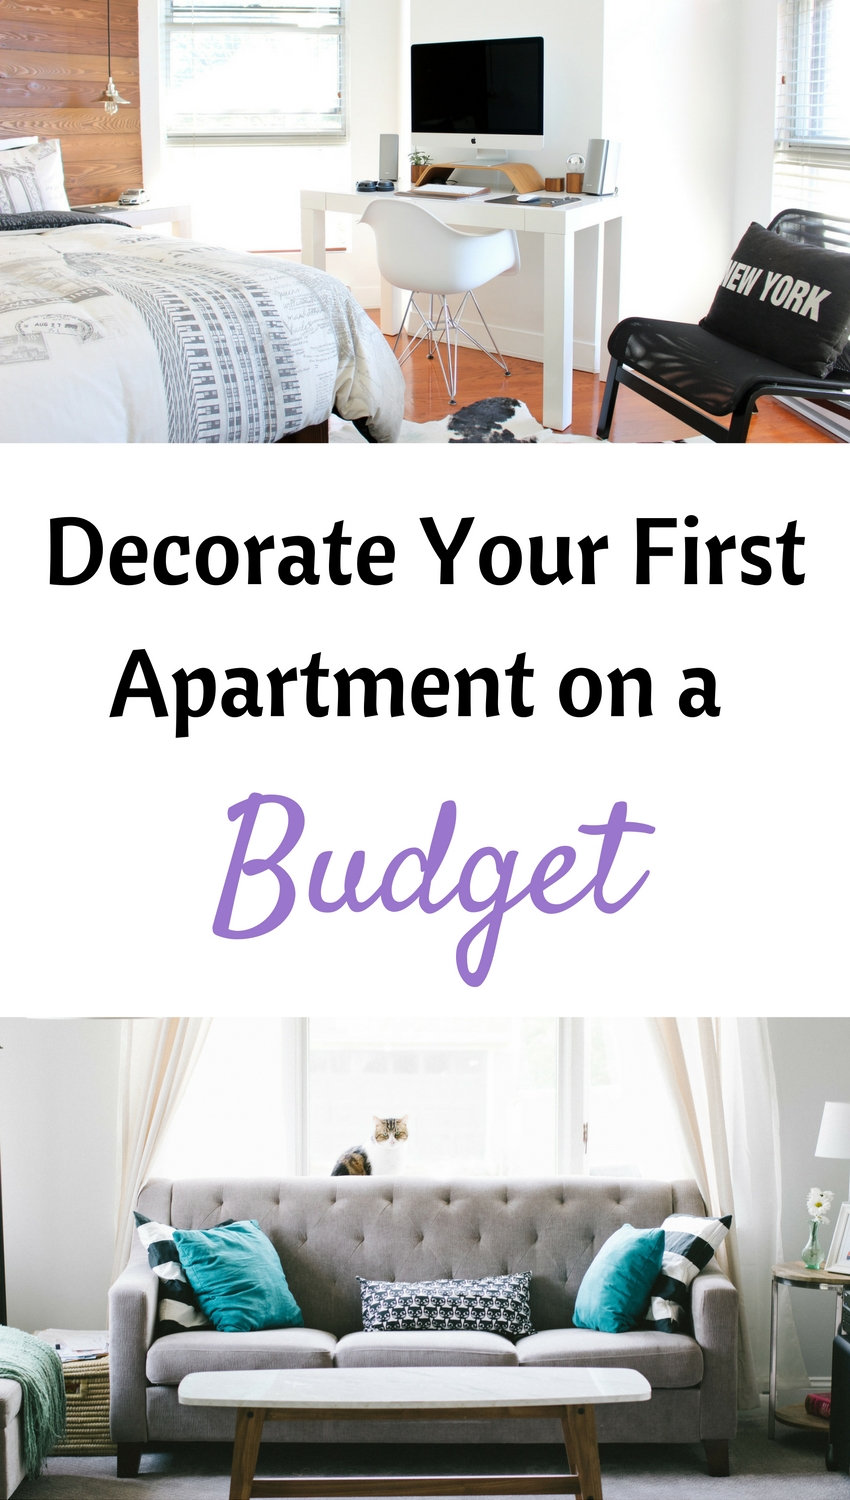 How to decorate your first apartment on a budget Decorating my first apartment